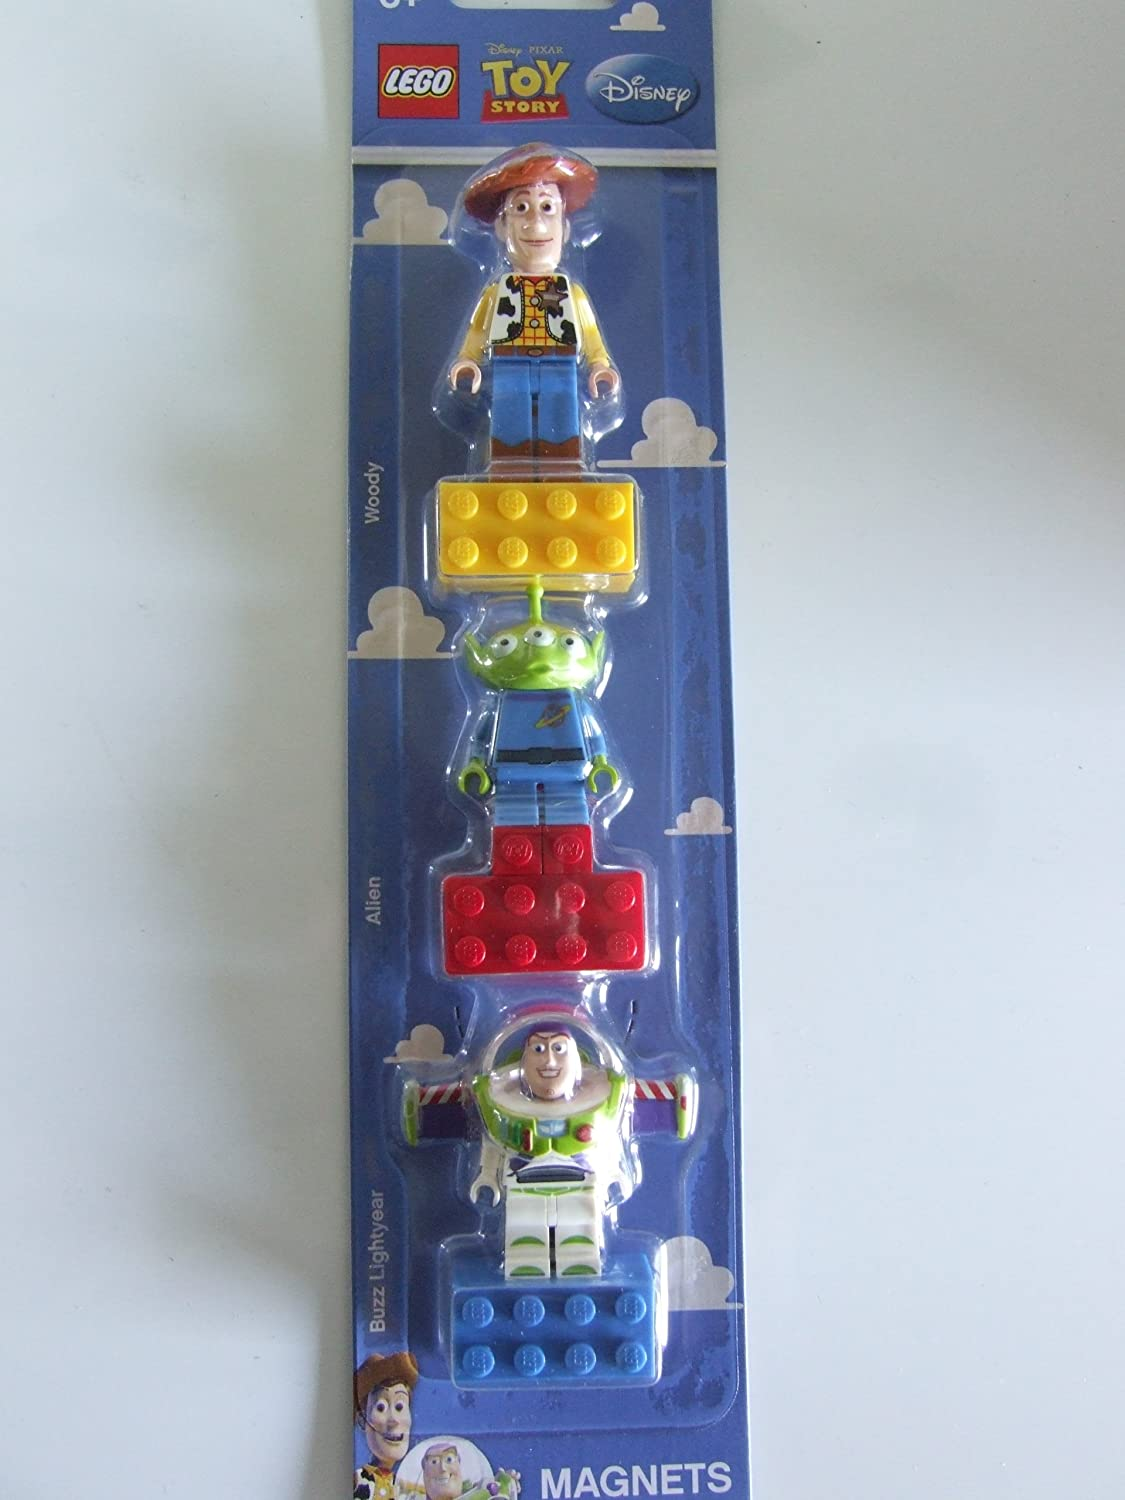 LEGO Toy Story Magnets Set of 3 - Woody, Alien, Buzz